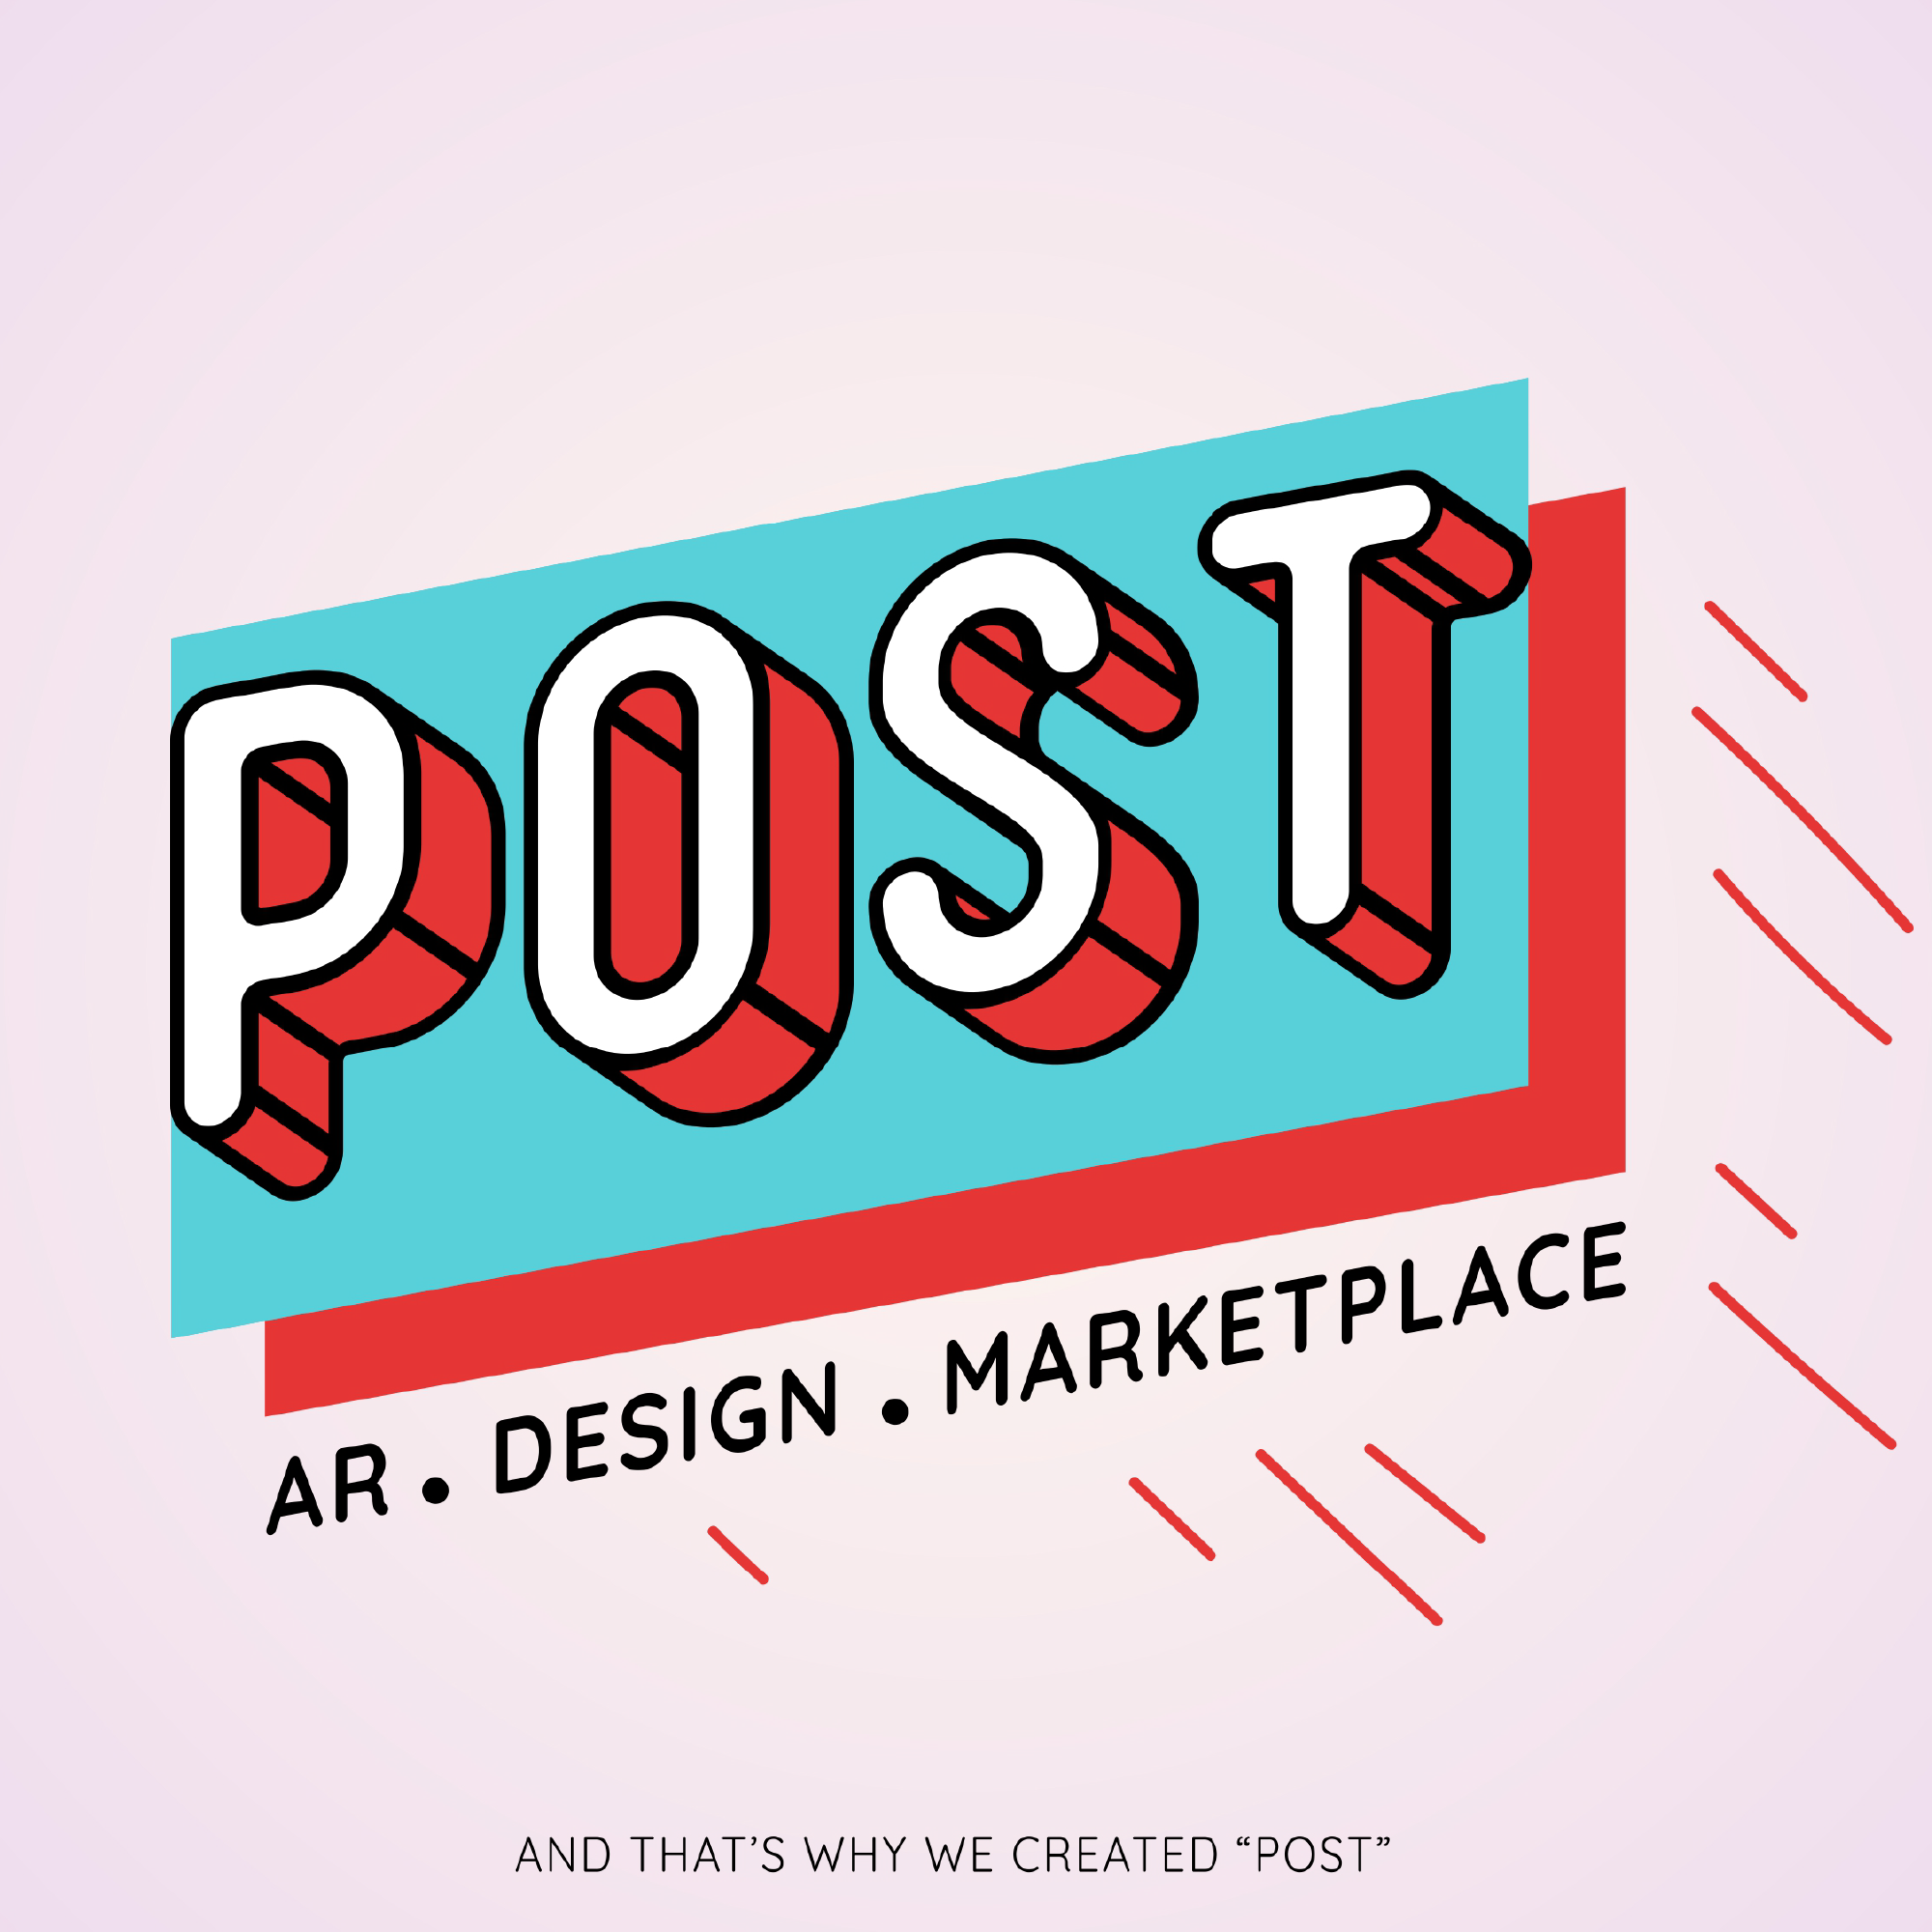 Page Internationale is proud to Launch Post App Crowdfunding Campaign on Wednesday, December 23rd 2020. Post, AR Design Marketplace.